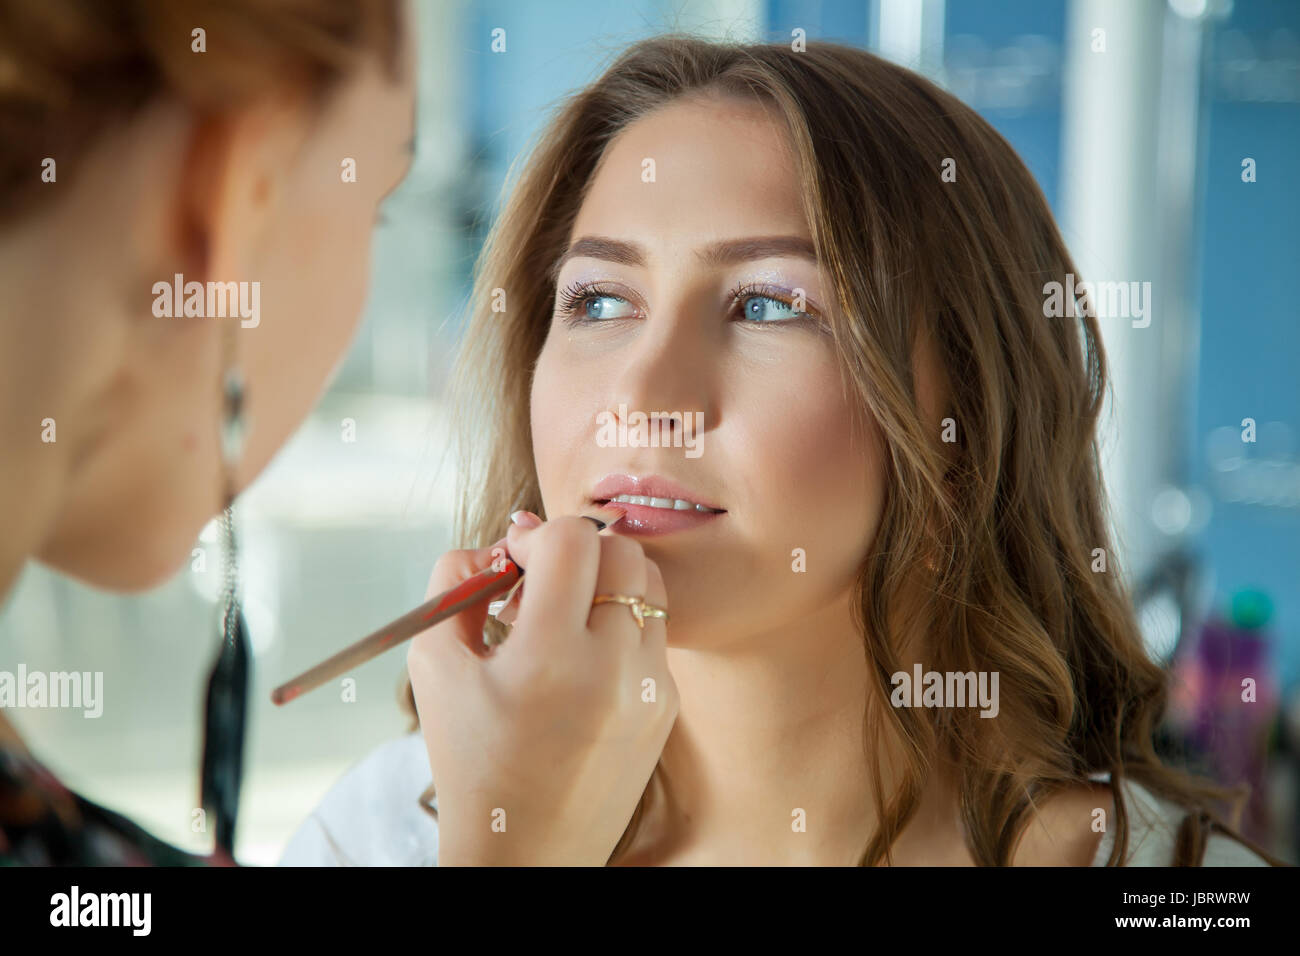 Make up artist doing professional makeup of young woman - Stock Image